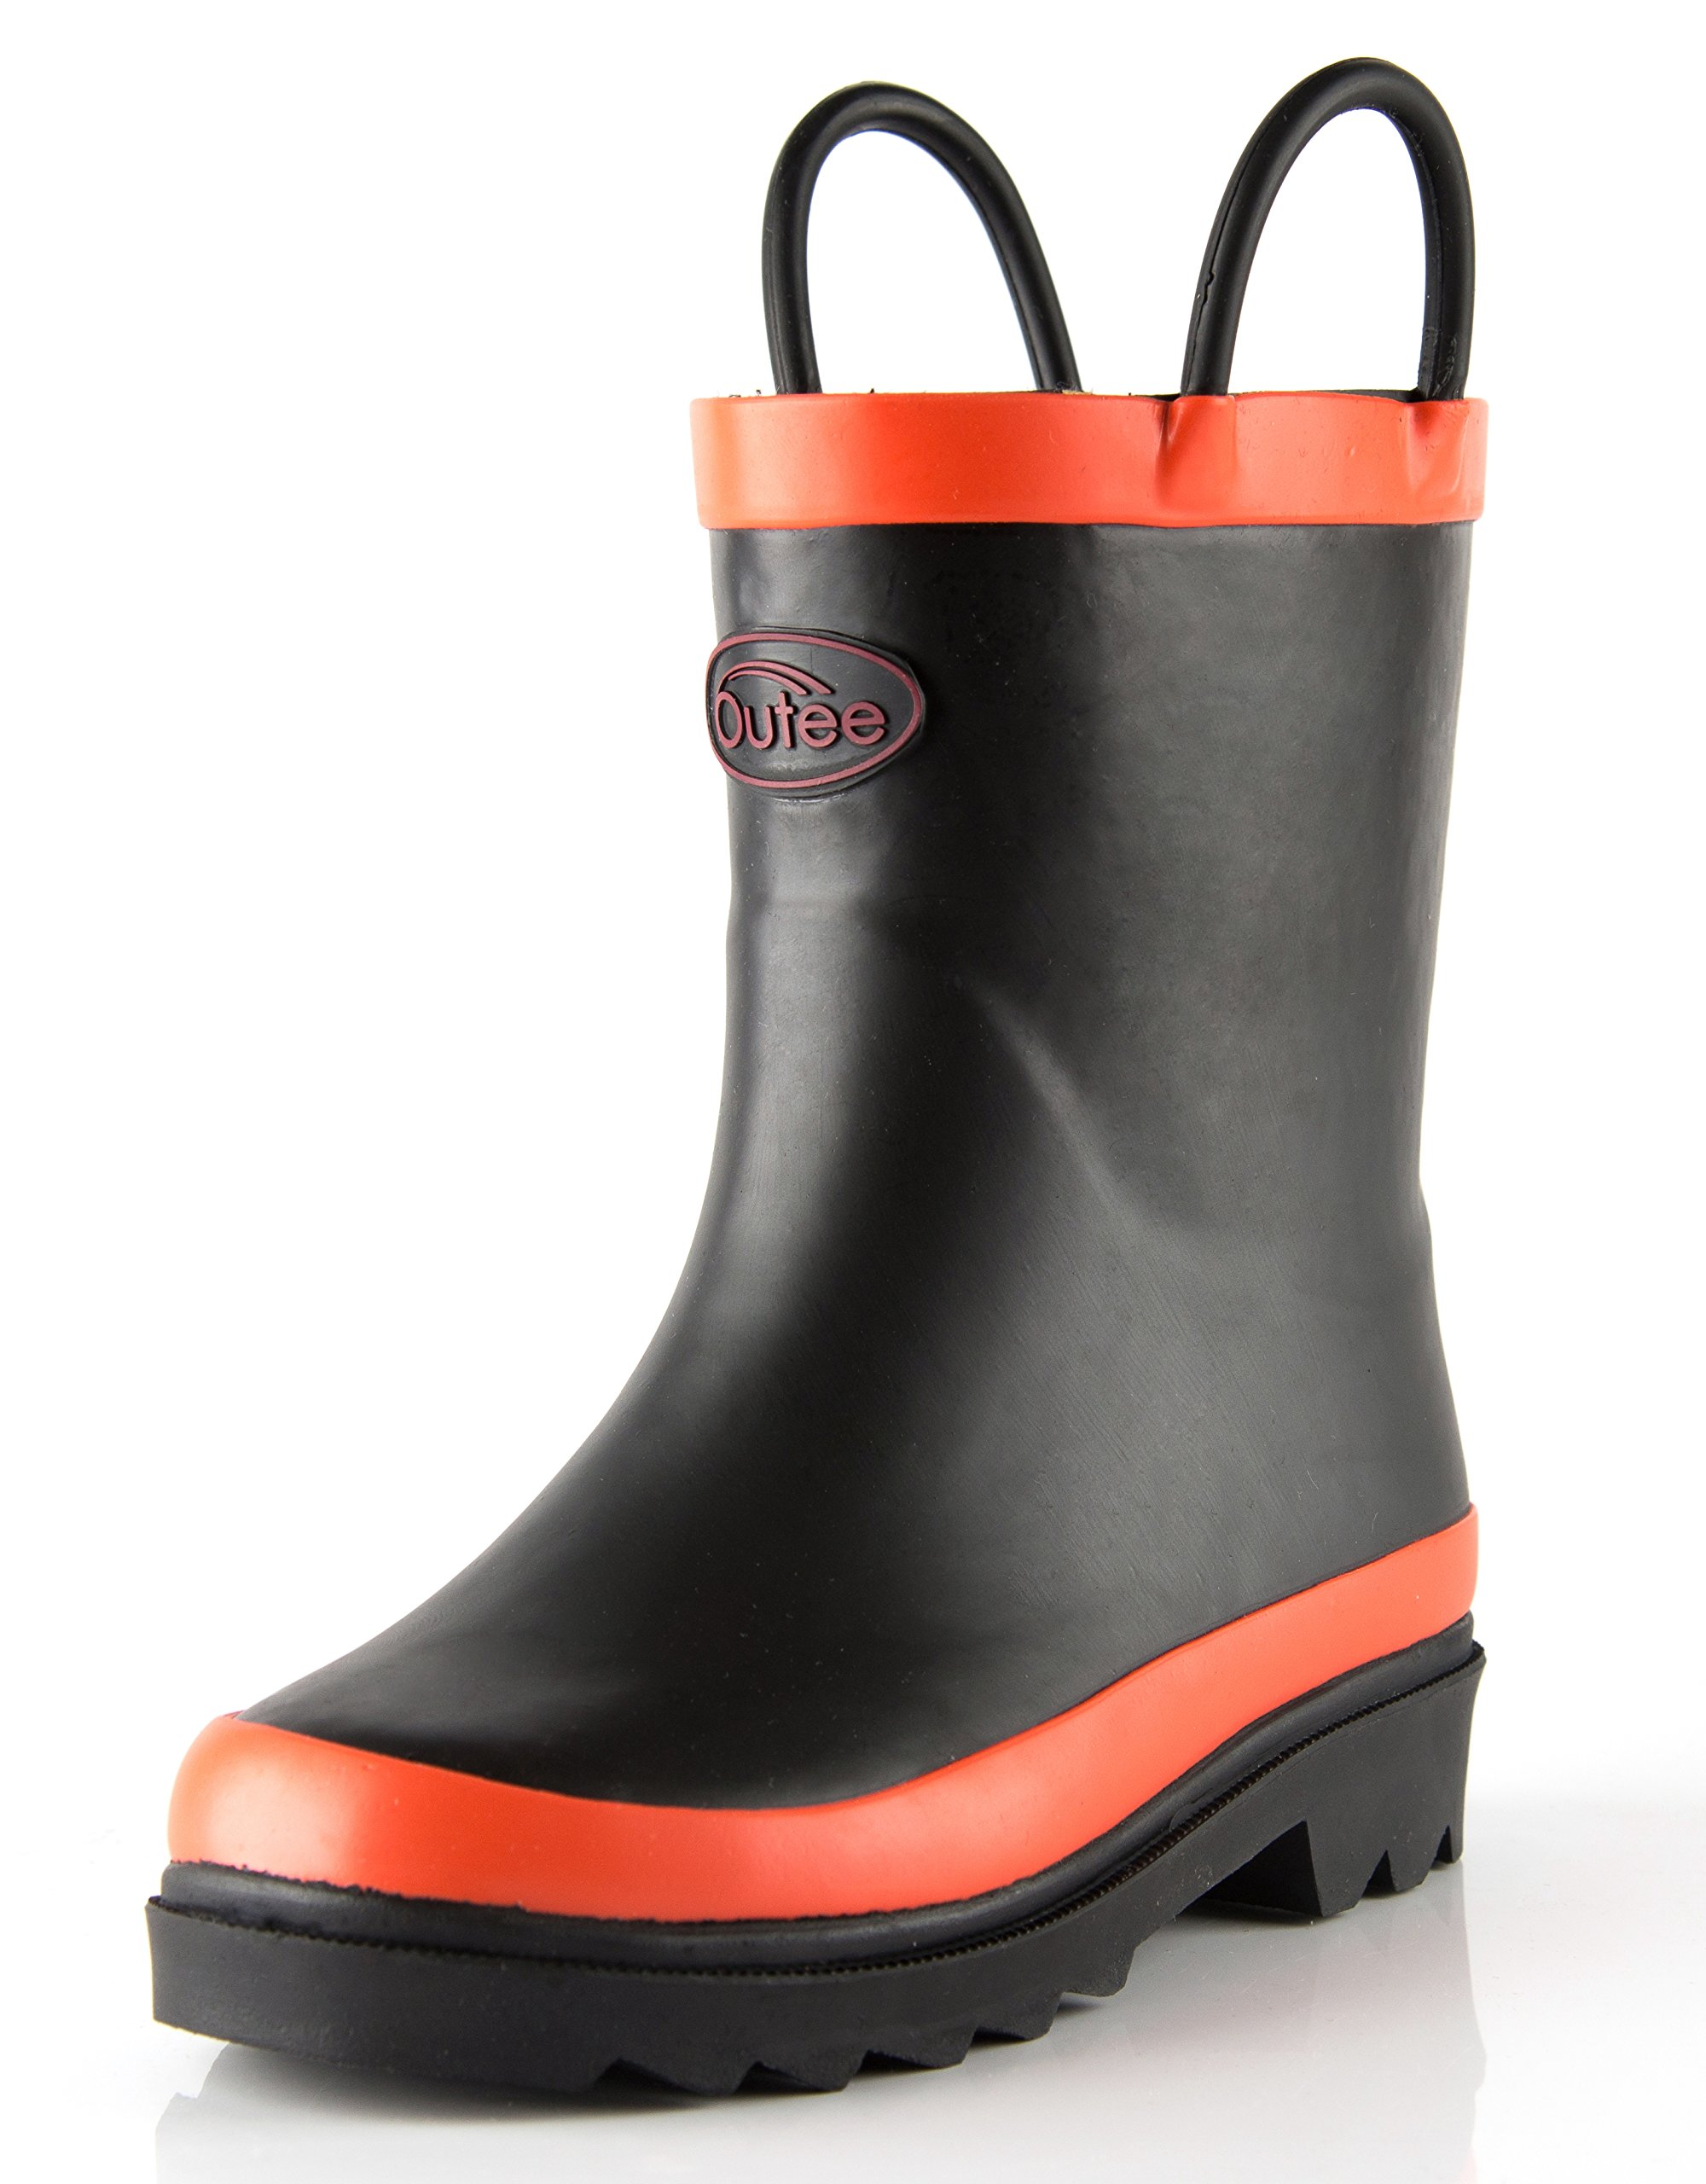 Outee Boys Girls Kids Rubber Rain Boots Waterproof Black in Solid Color with Easy-On Handles Classic Comfortable Removable Insoles Anti-Slippery Durable Sole with Grip (Size 2,Black) by Outee (Image #1)